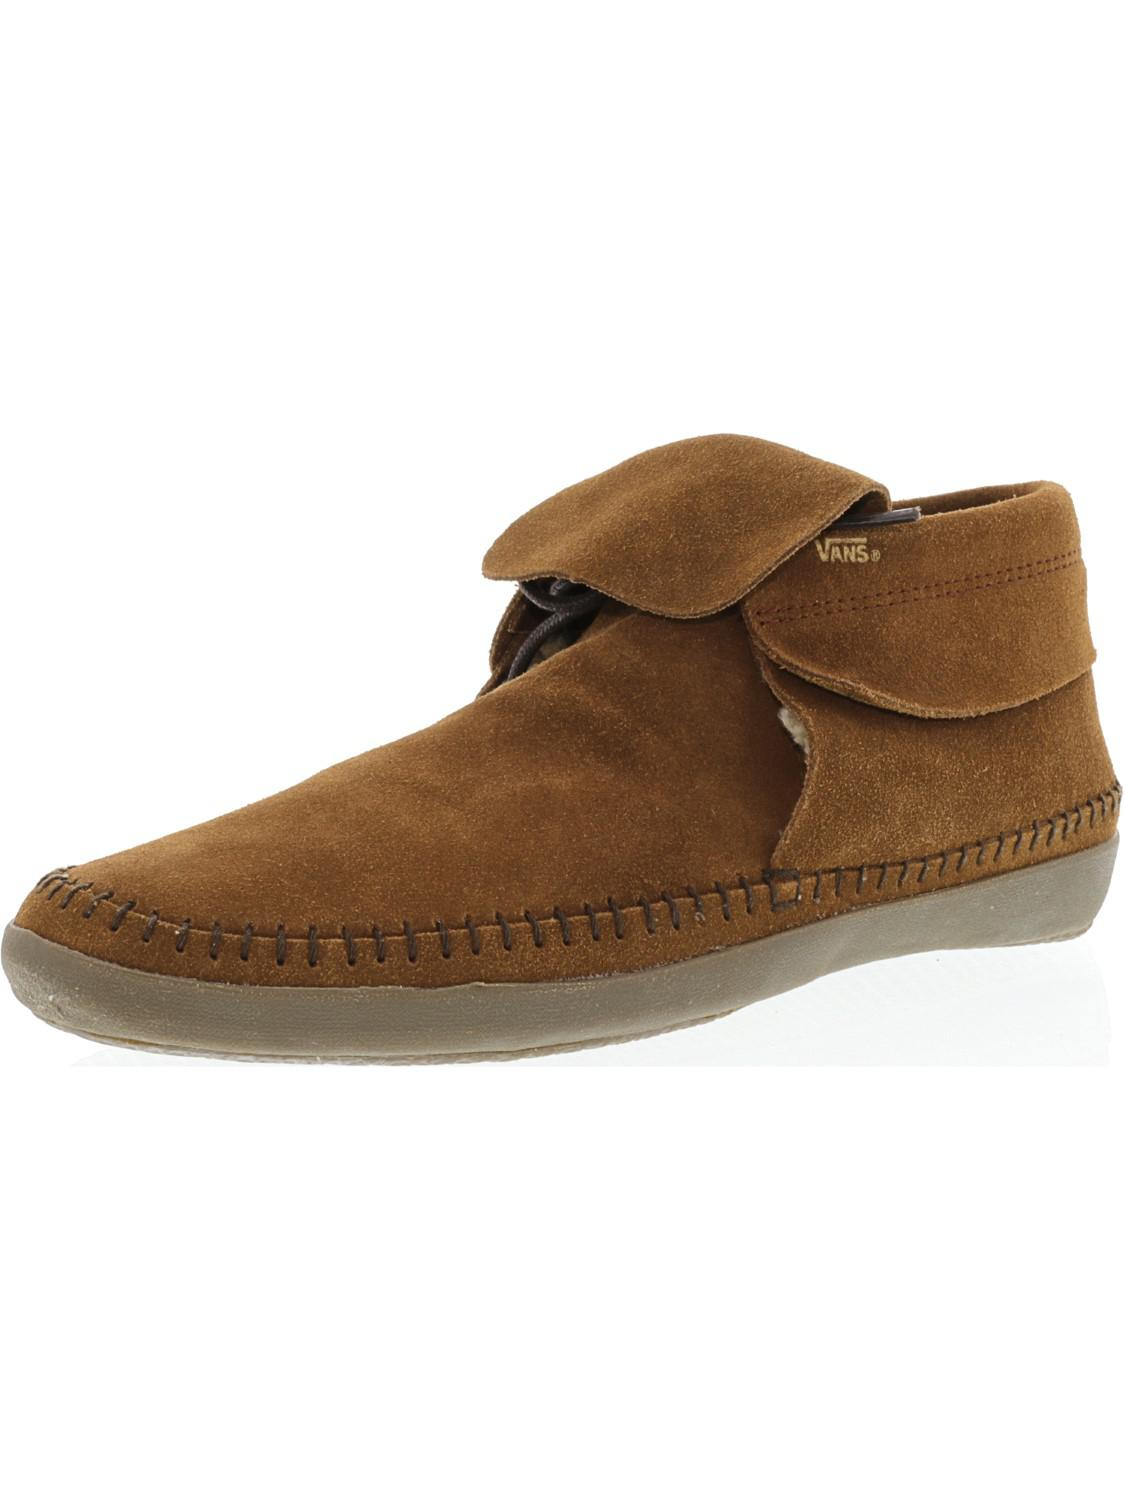 0ed973e41e Lyst - Vans Mohikan Fleece Ankle-high Suede Moccasins - 10.5m in ...